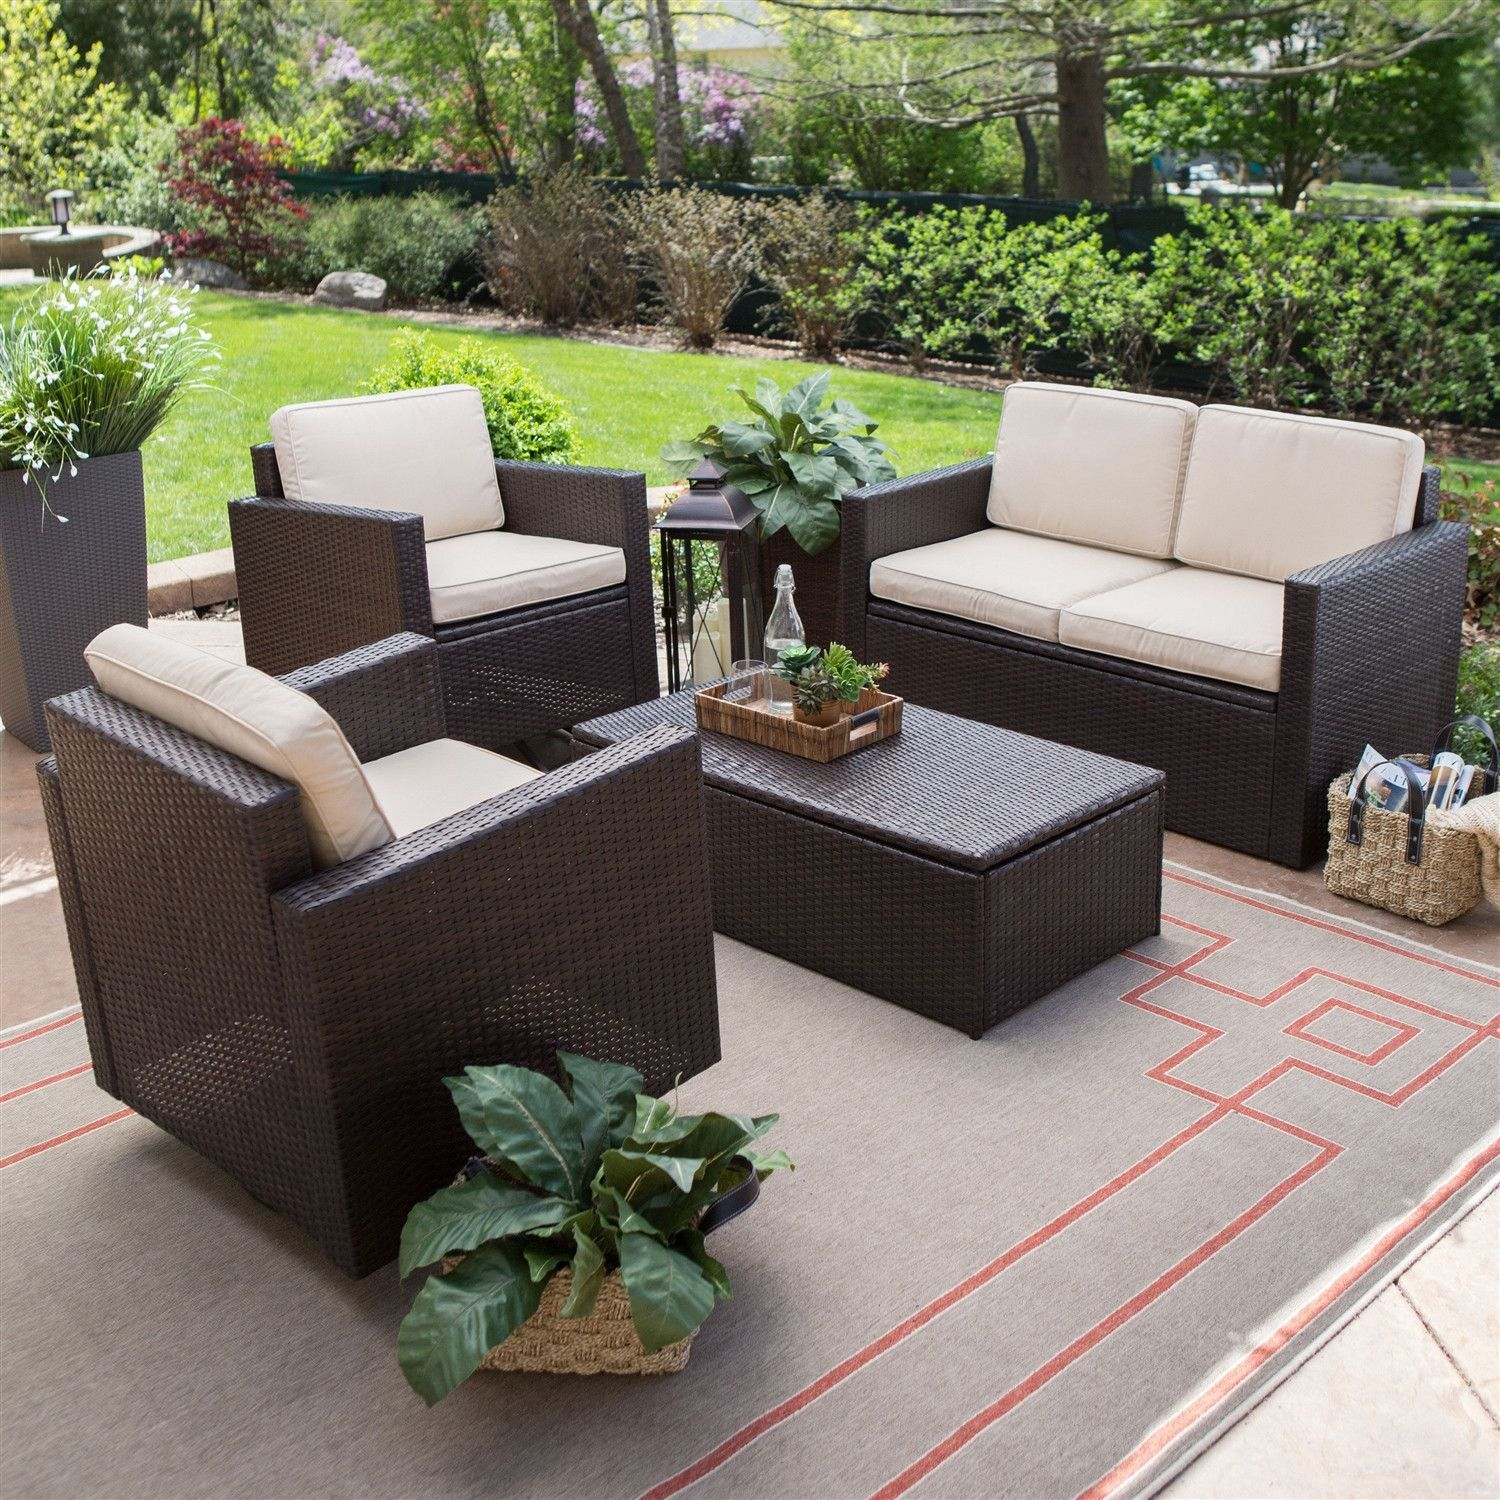 Outdoor Wicker Resin 4-piece Patio Furniture Dinning Set